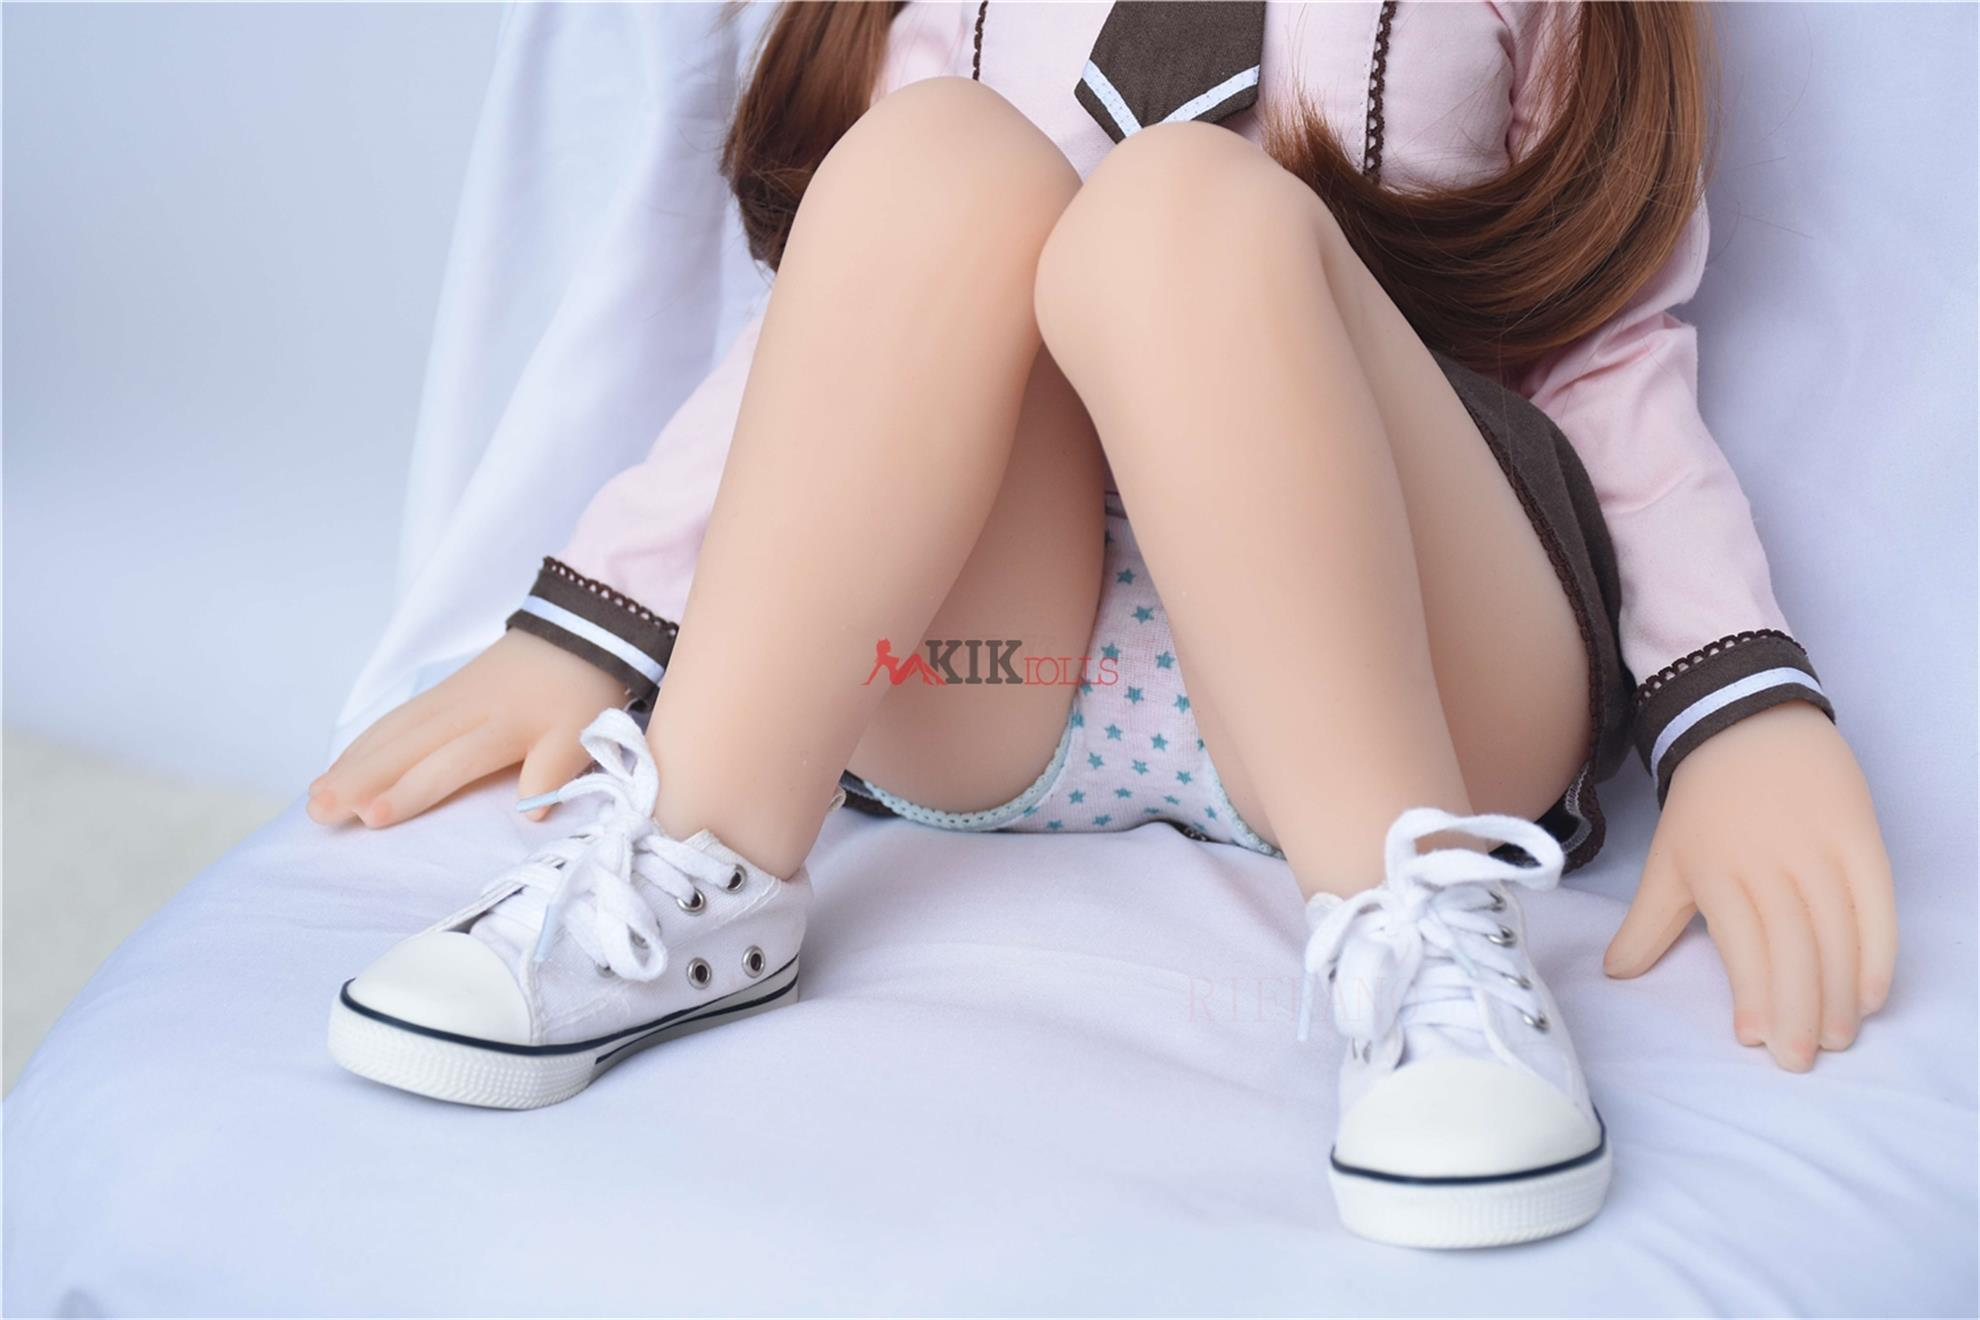 65cm petite tiny sex doll (20)